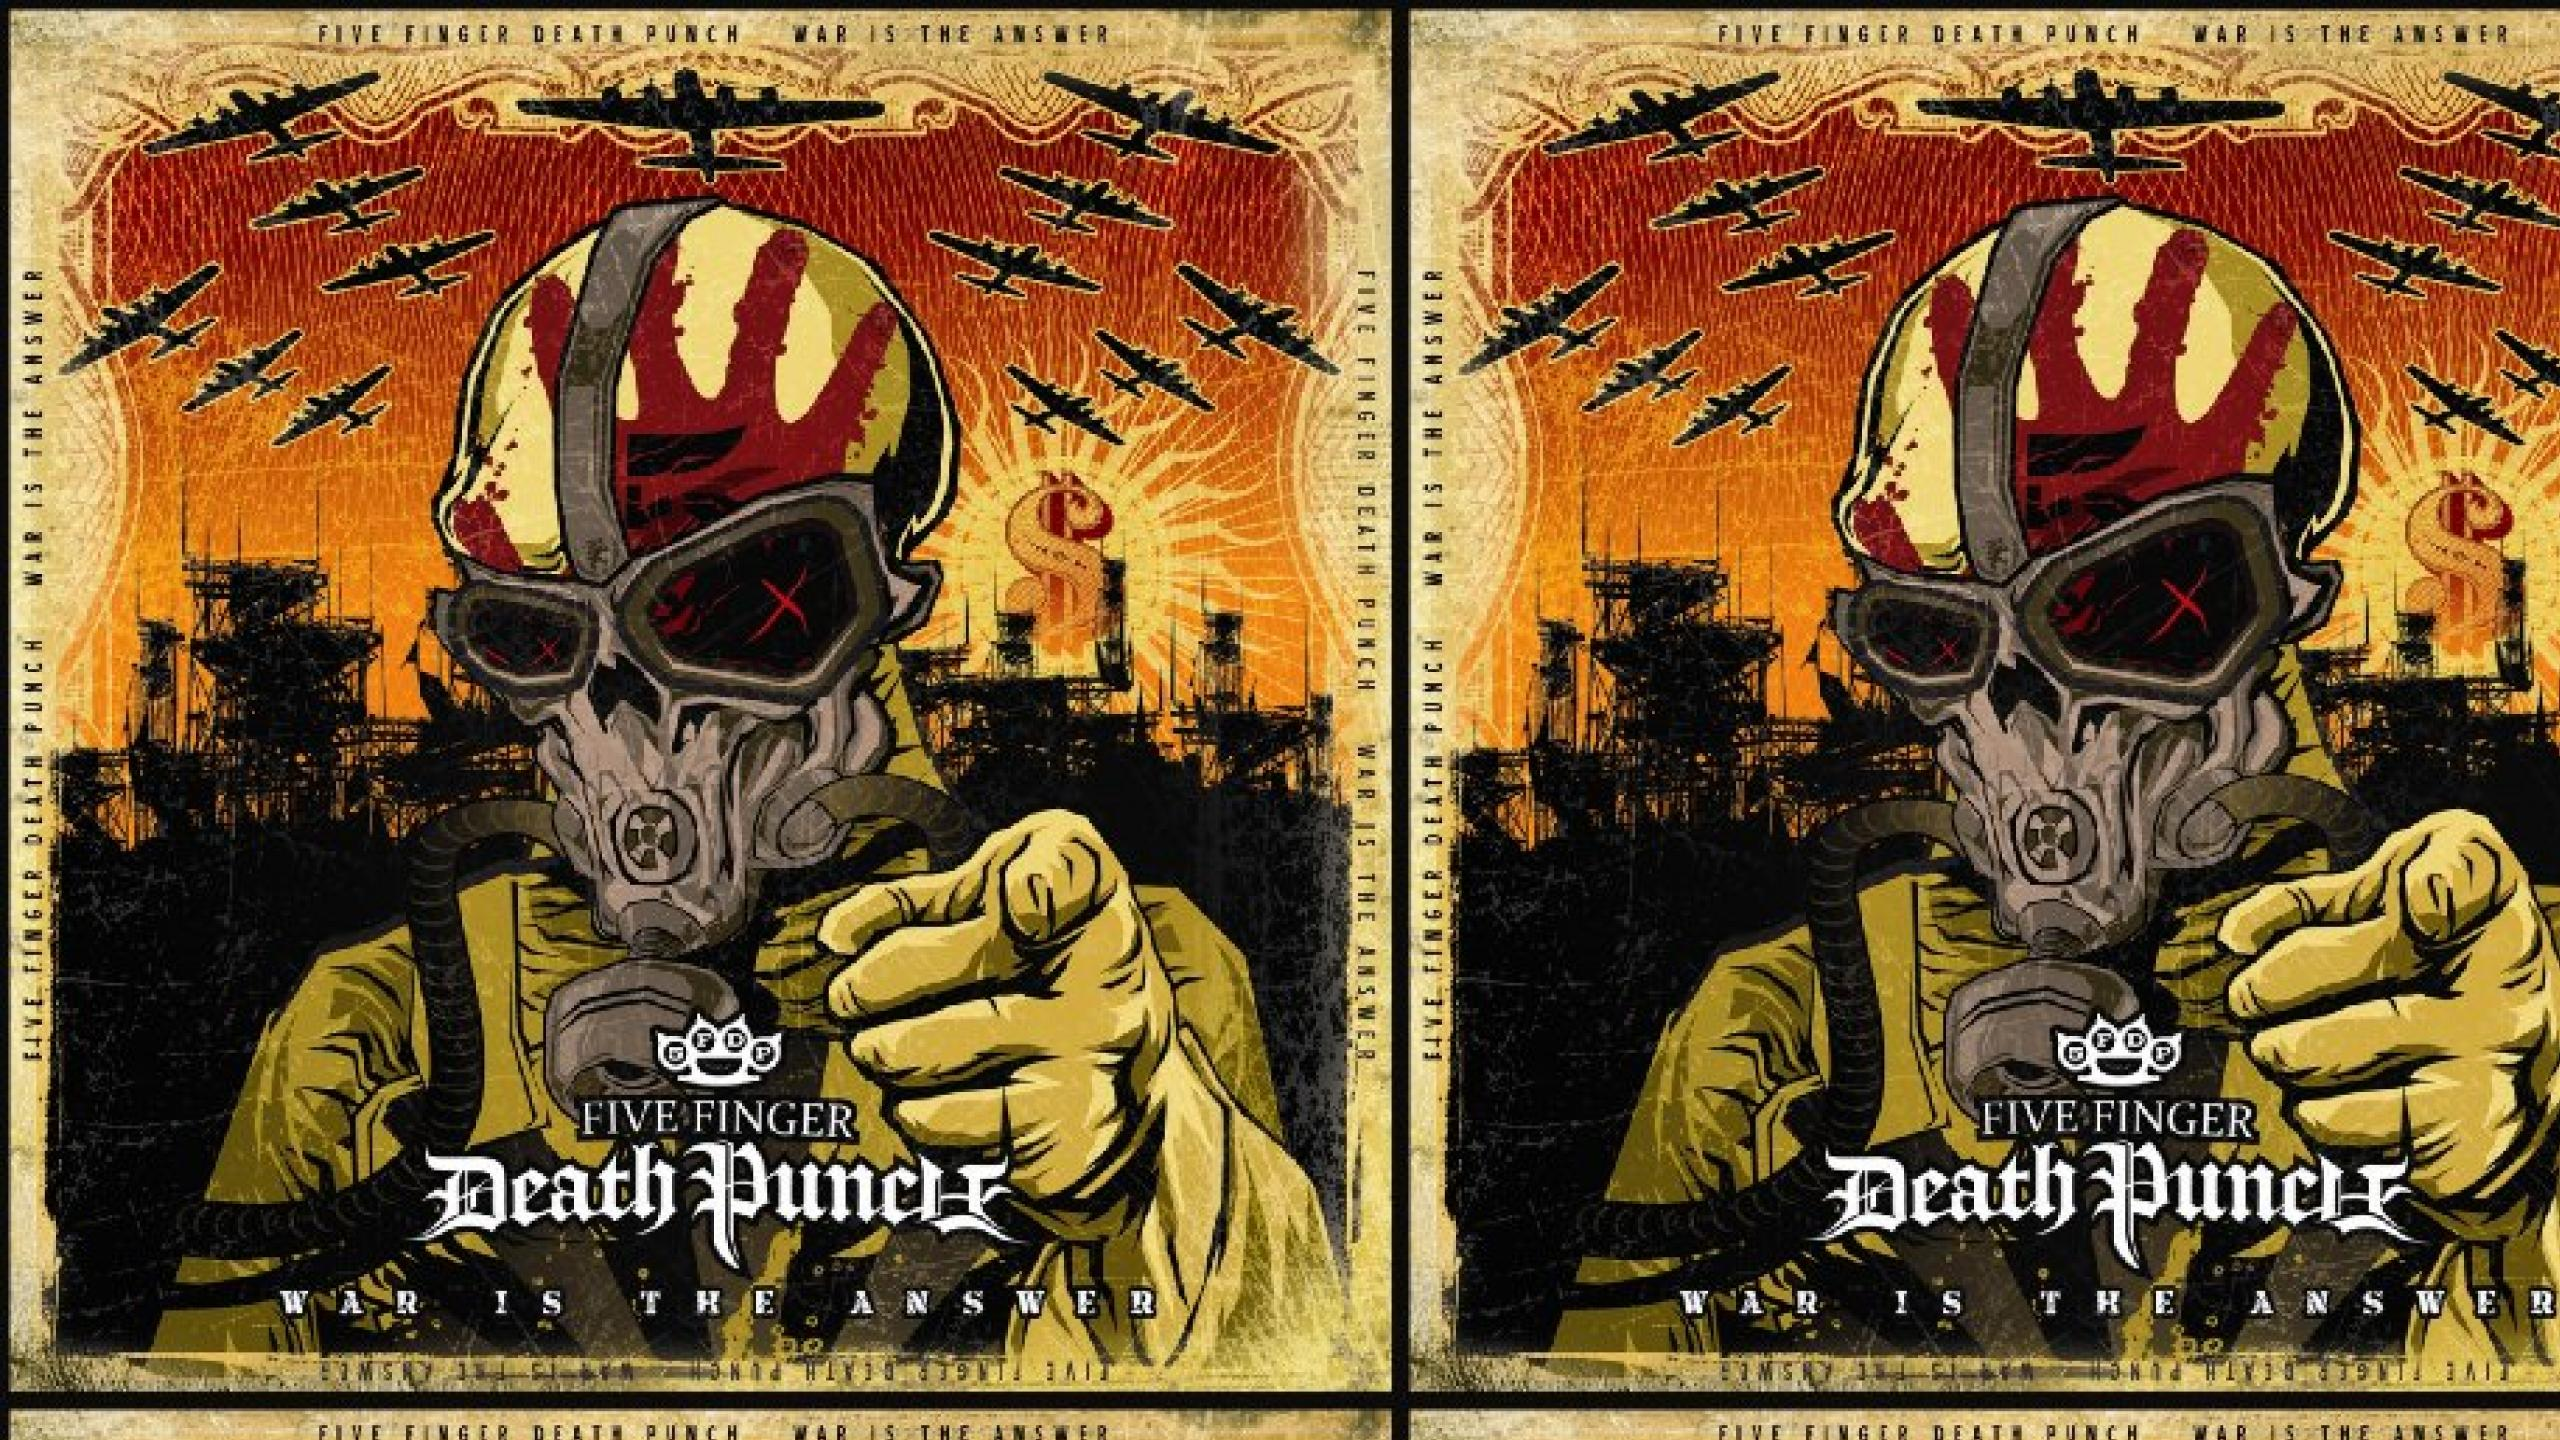 Five Finger Death Punch War Is The Answer Wallpaper Ffdp War Is